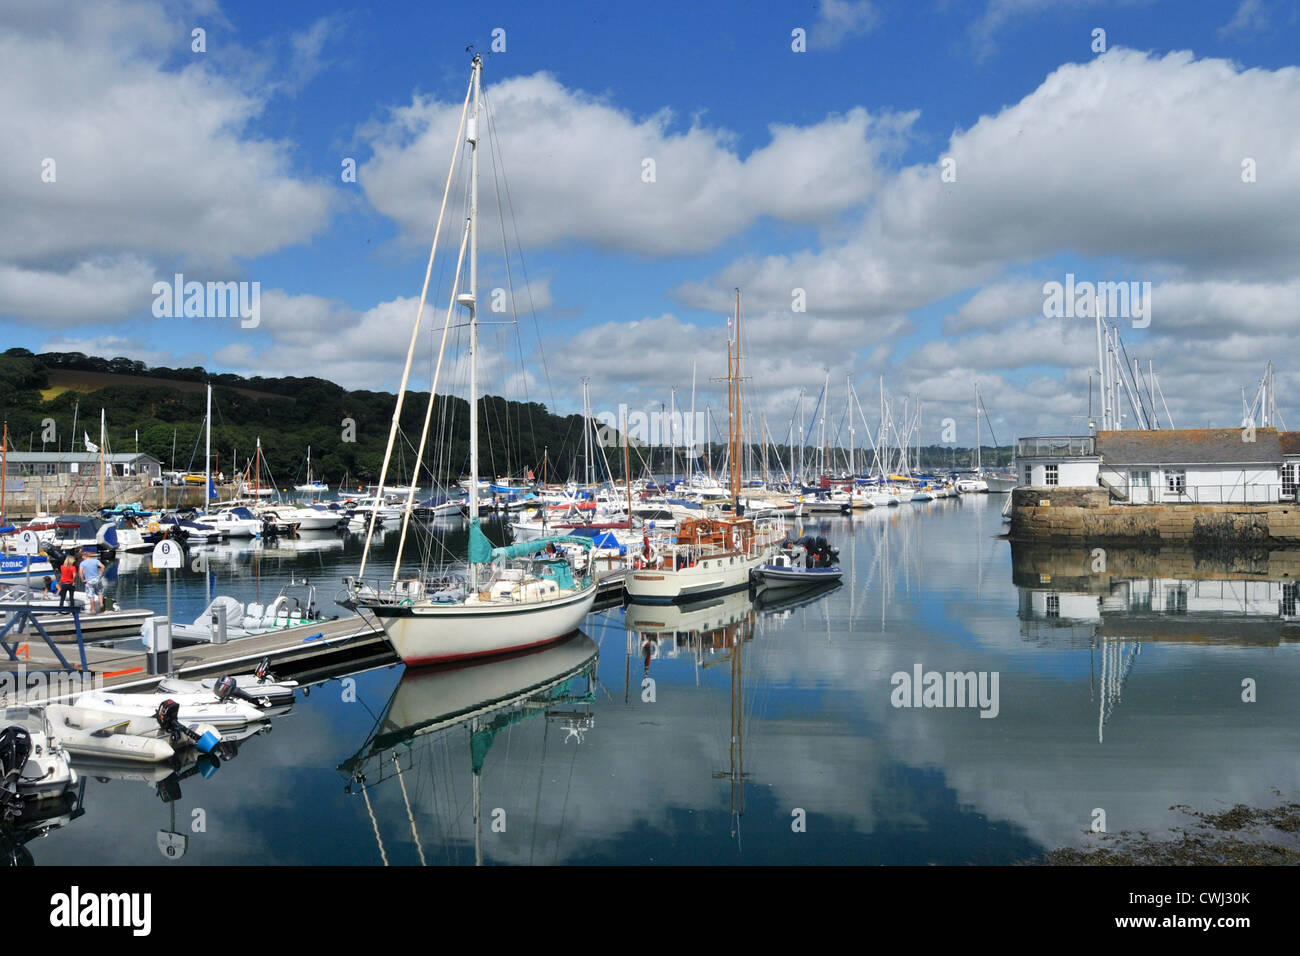 Yachts in the marina at Mylor, near Falmouth, in Cornwall - Stock Image